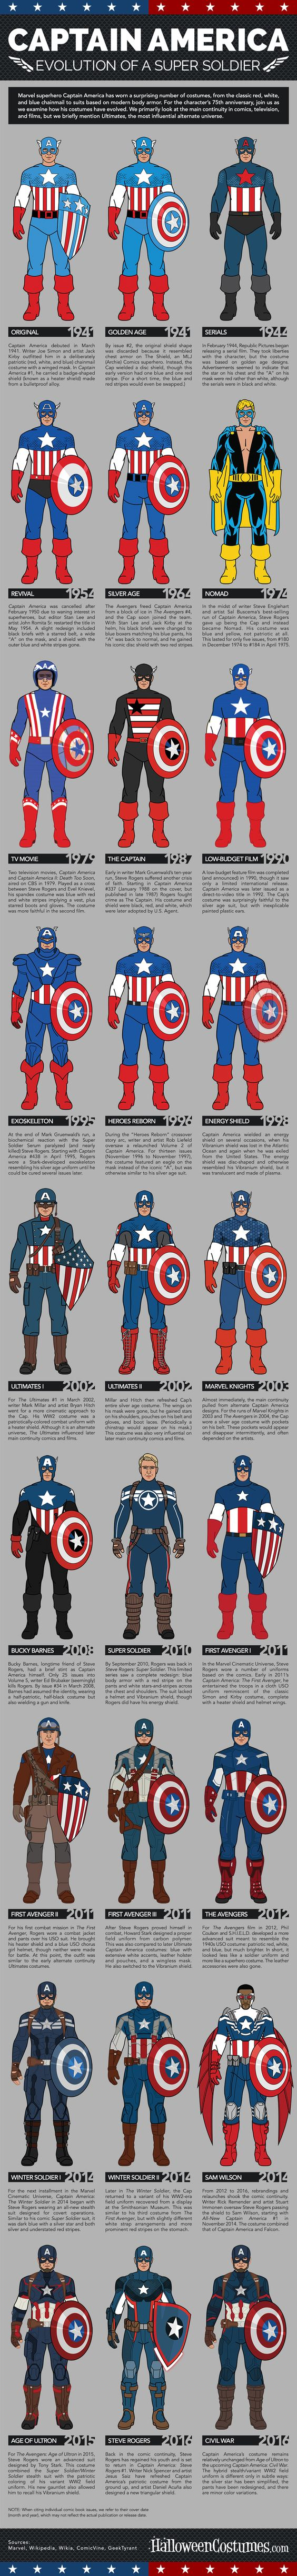 Captain America: Evolution of a Super Soldier Infographic - see all of Captain America costumes from 1941 to today!: